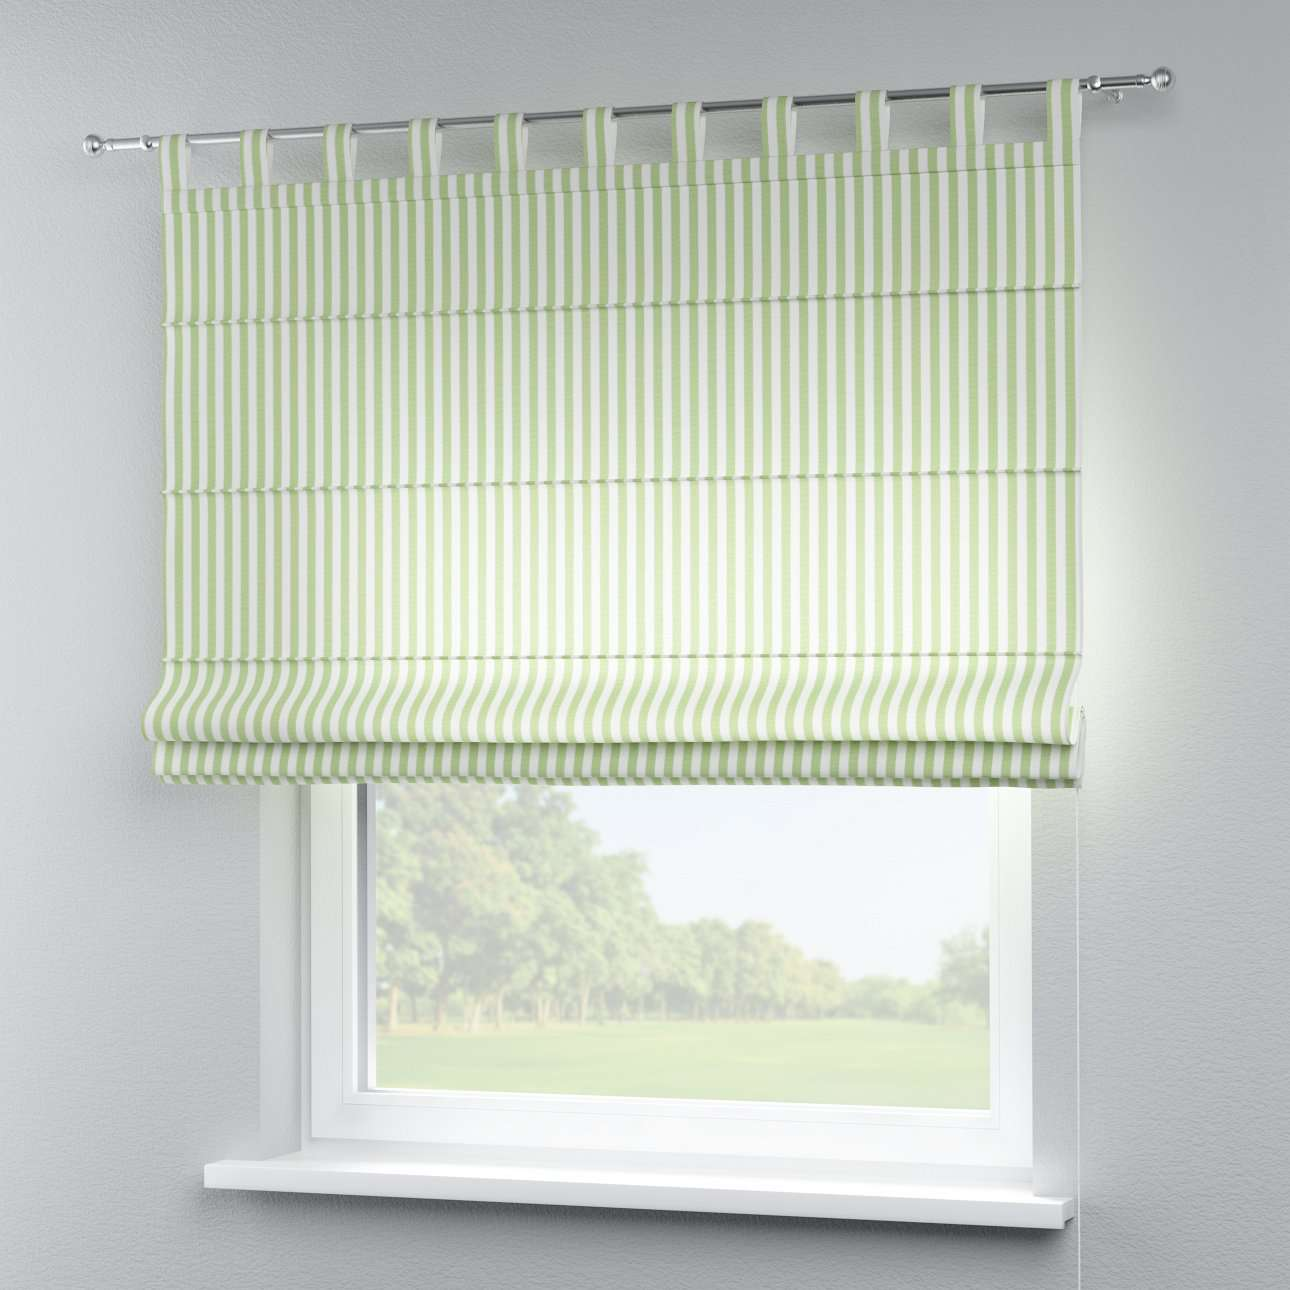 Verona tab top roman blind 80 x 170 cm (31.5 x 67 inch) in collection Quadro, fabric: 136-35